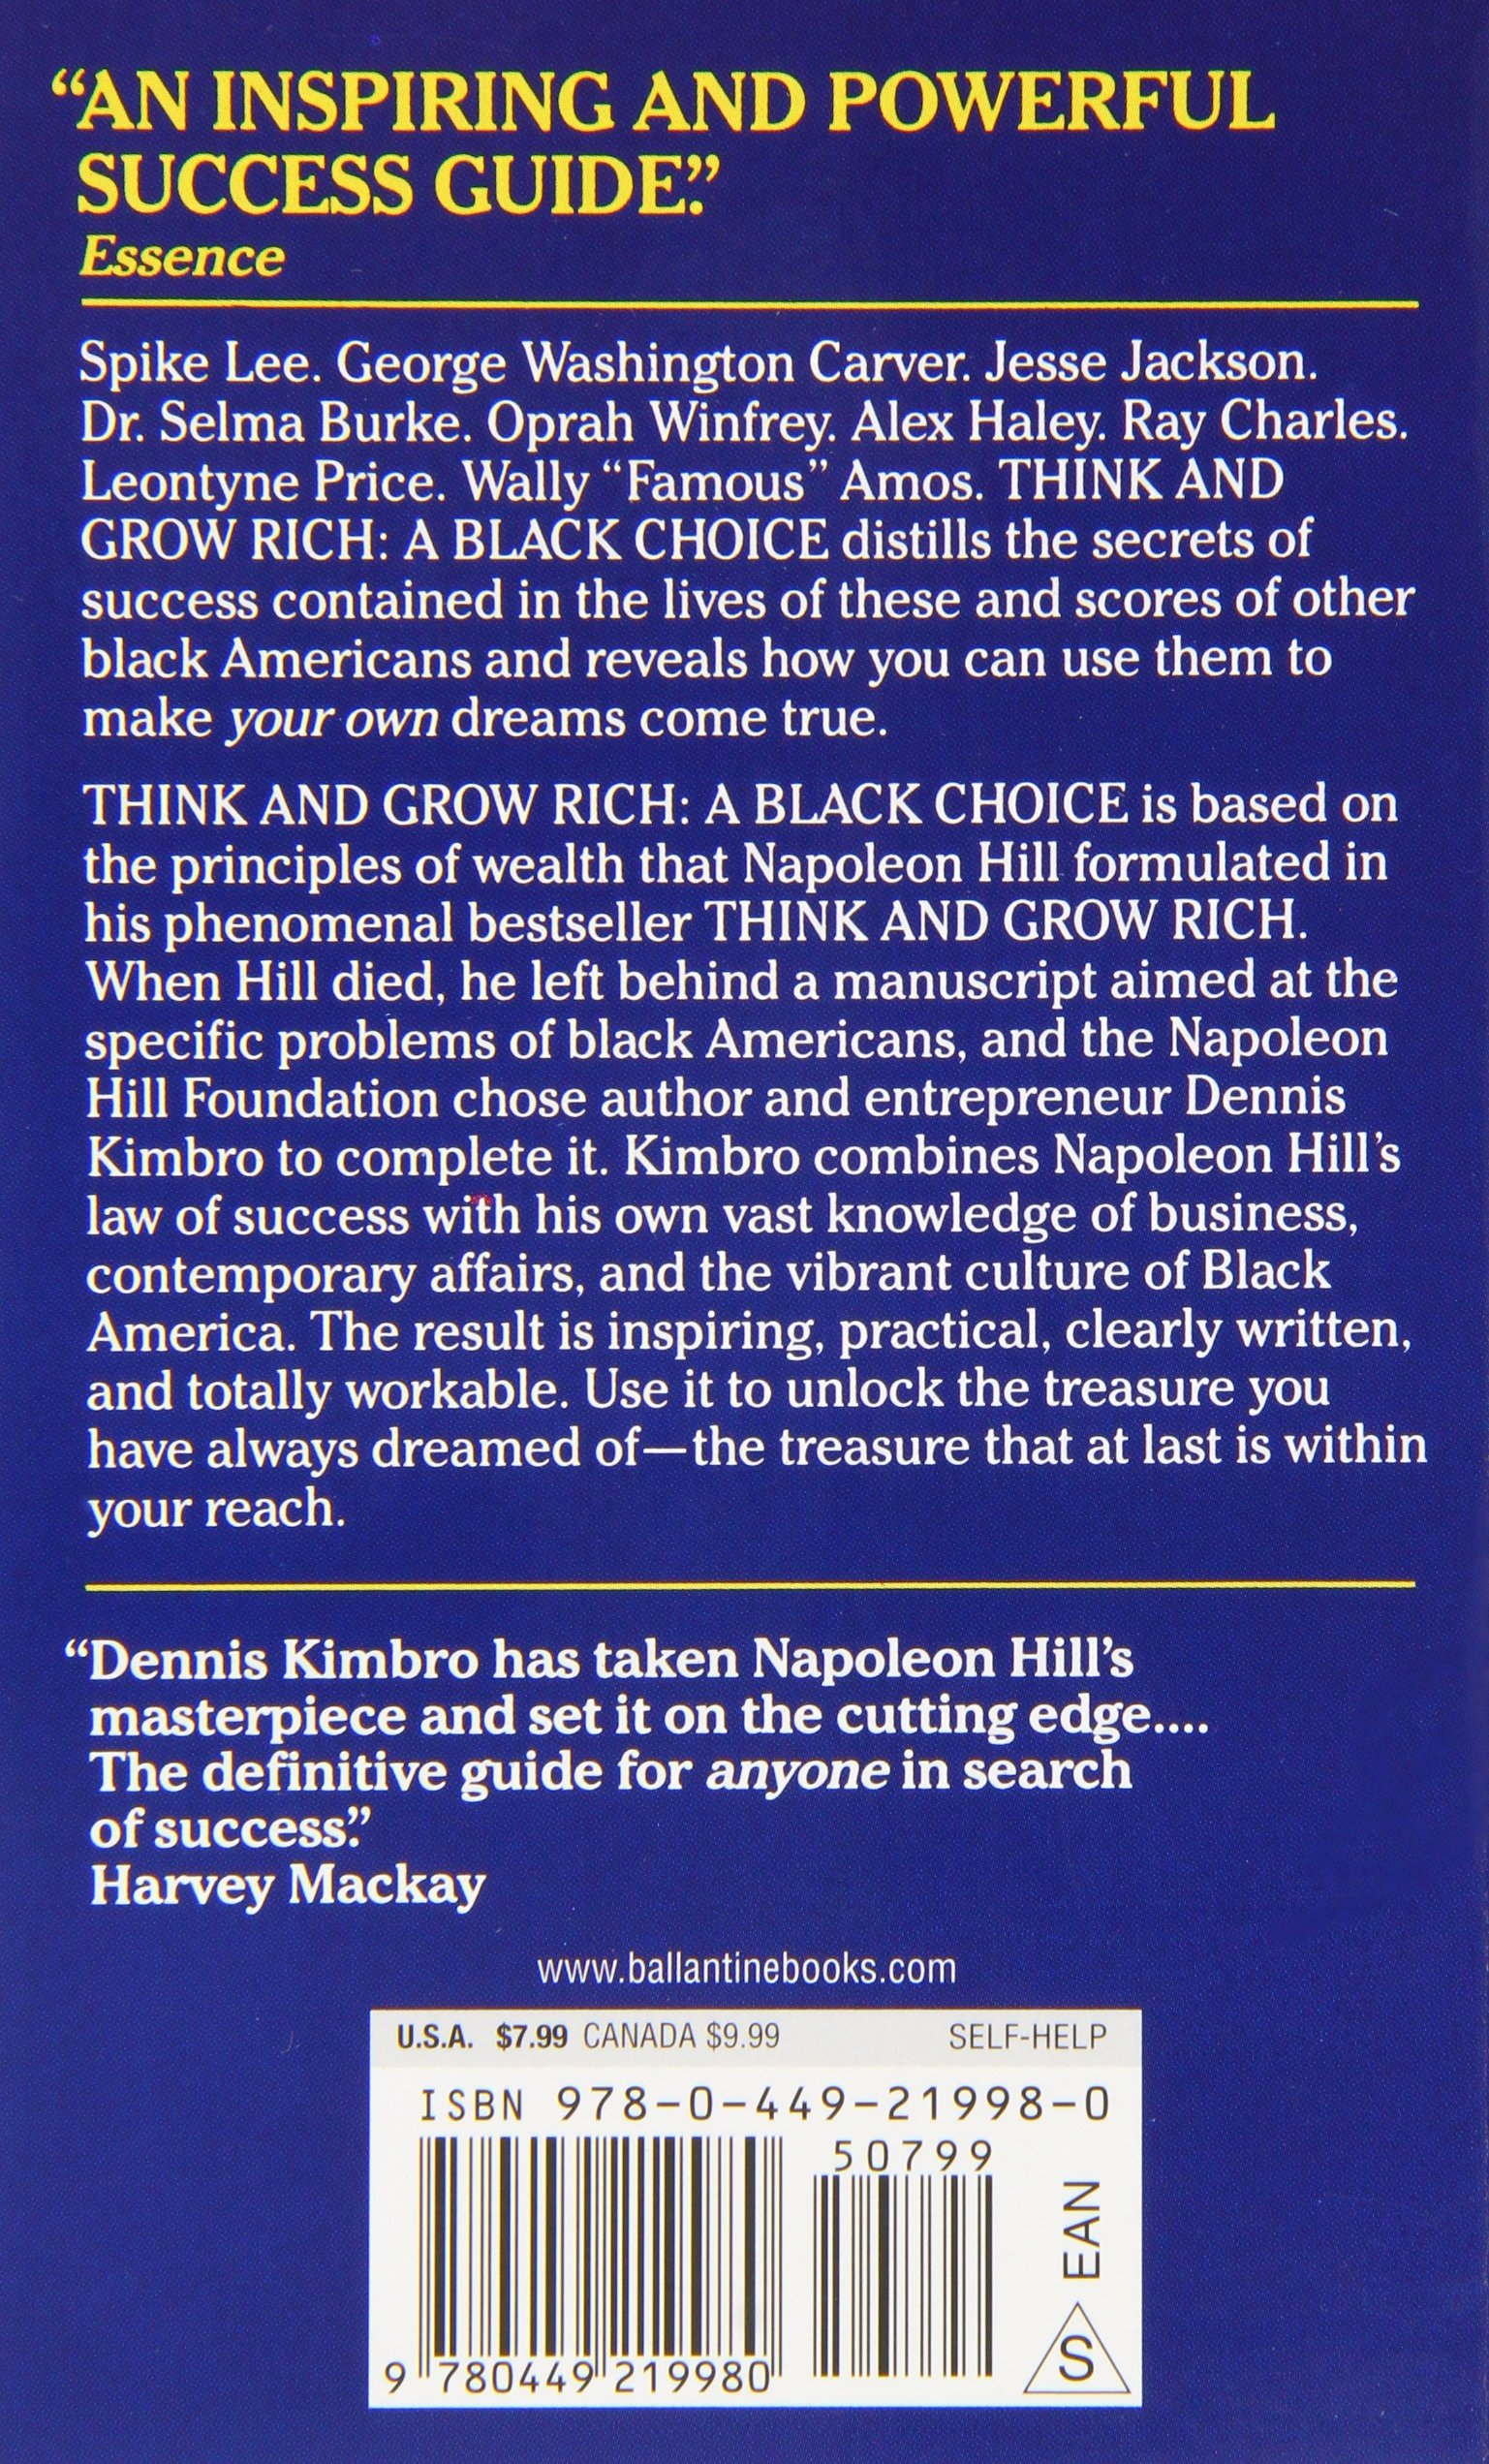 Think and grow rich a black choice dennis kimbro napoleon hill think and grow rich a black choice dennis kimbro napoleon hill 9780449219980 amazon books fandeluxe Choice Image